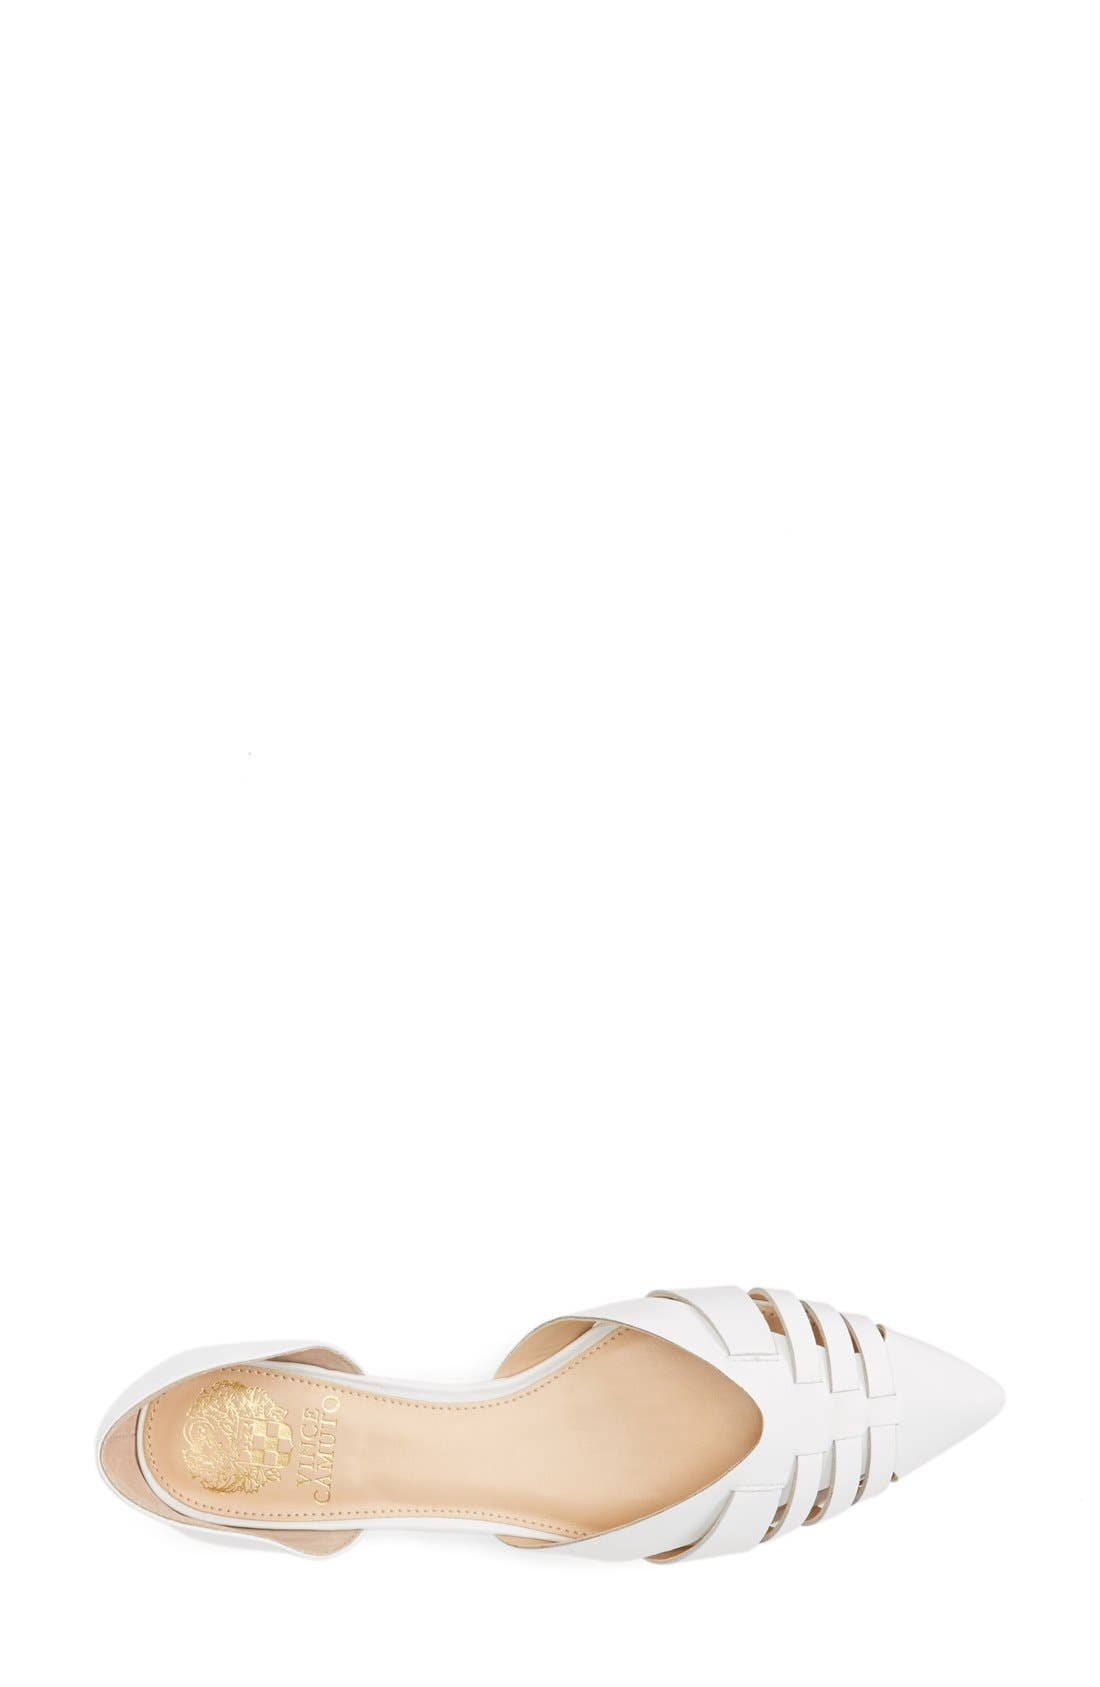 Alternate Image 3  - Vince Camuto 'Hallie' Woven Leather d'Orsay Flat (Women) (Nordstrom Exclusive)